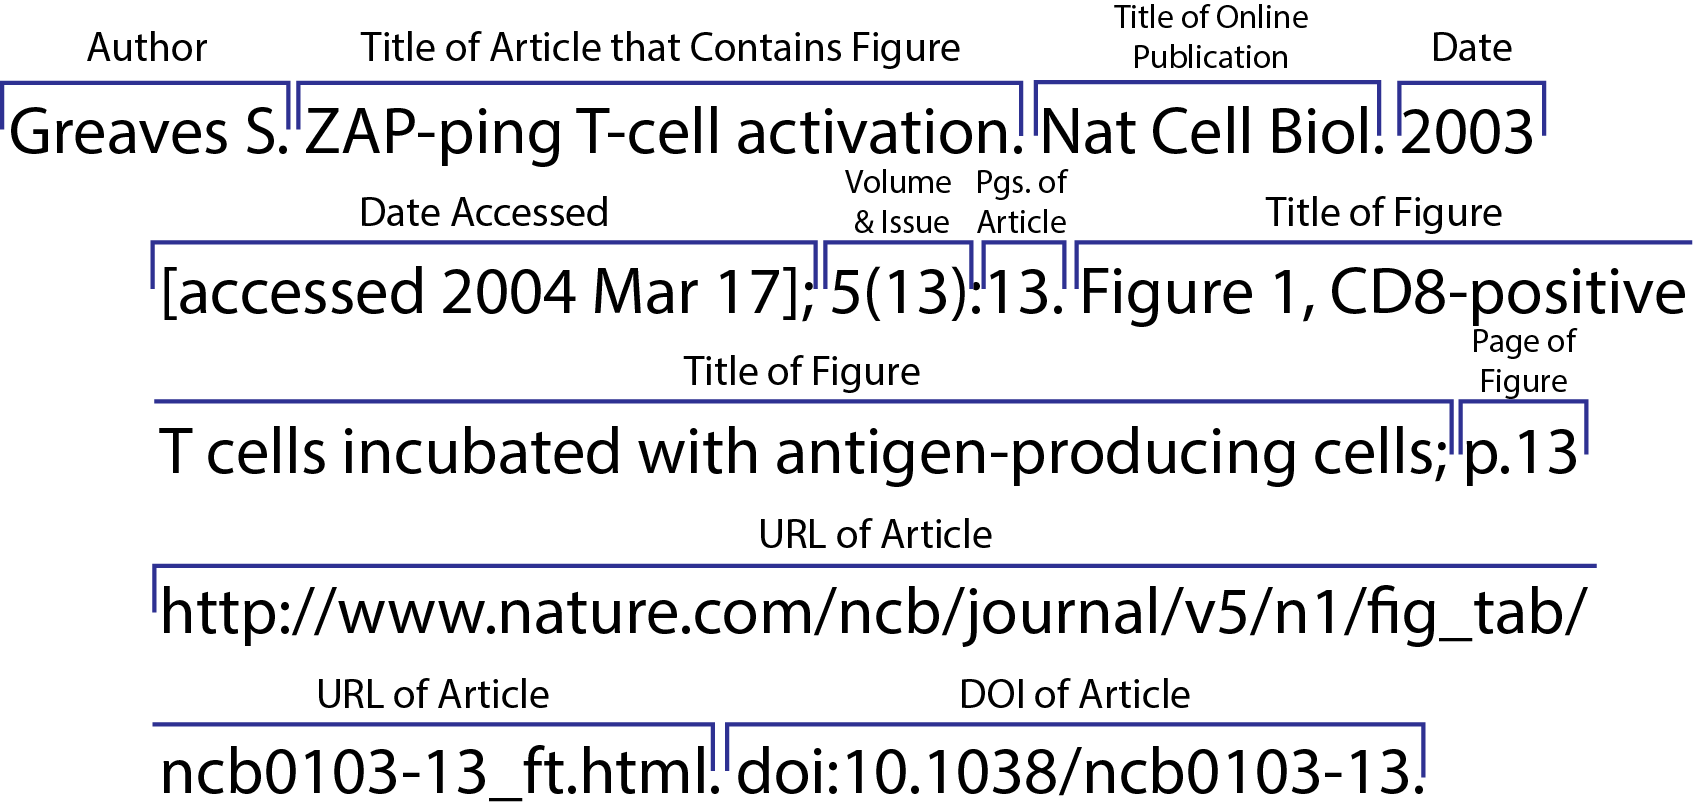 CSE/CBE 8 Citation Sequence Online Figure from Journal Article